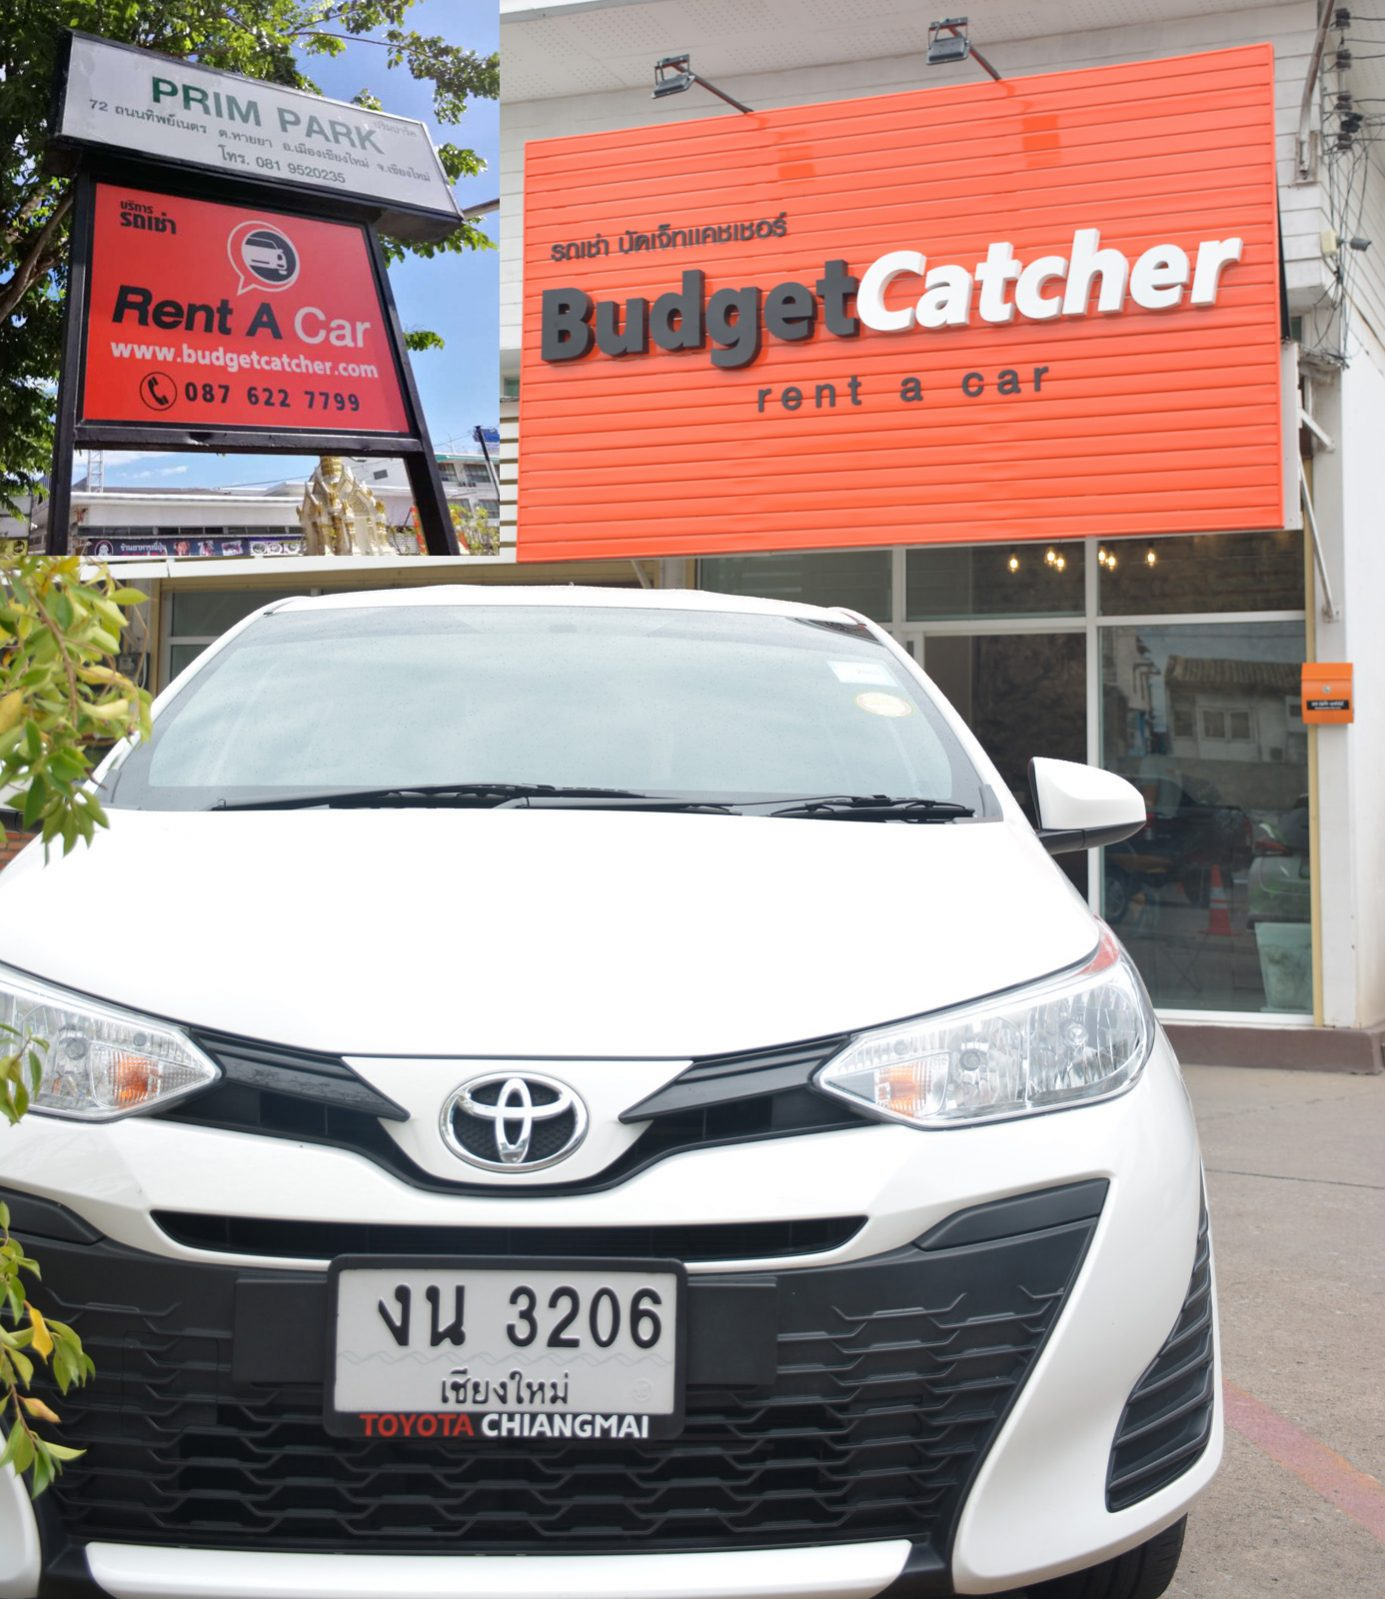 Japan budgetcatcher office carrent chiangmai